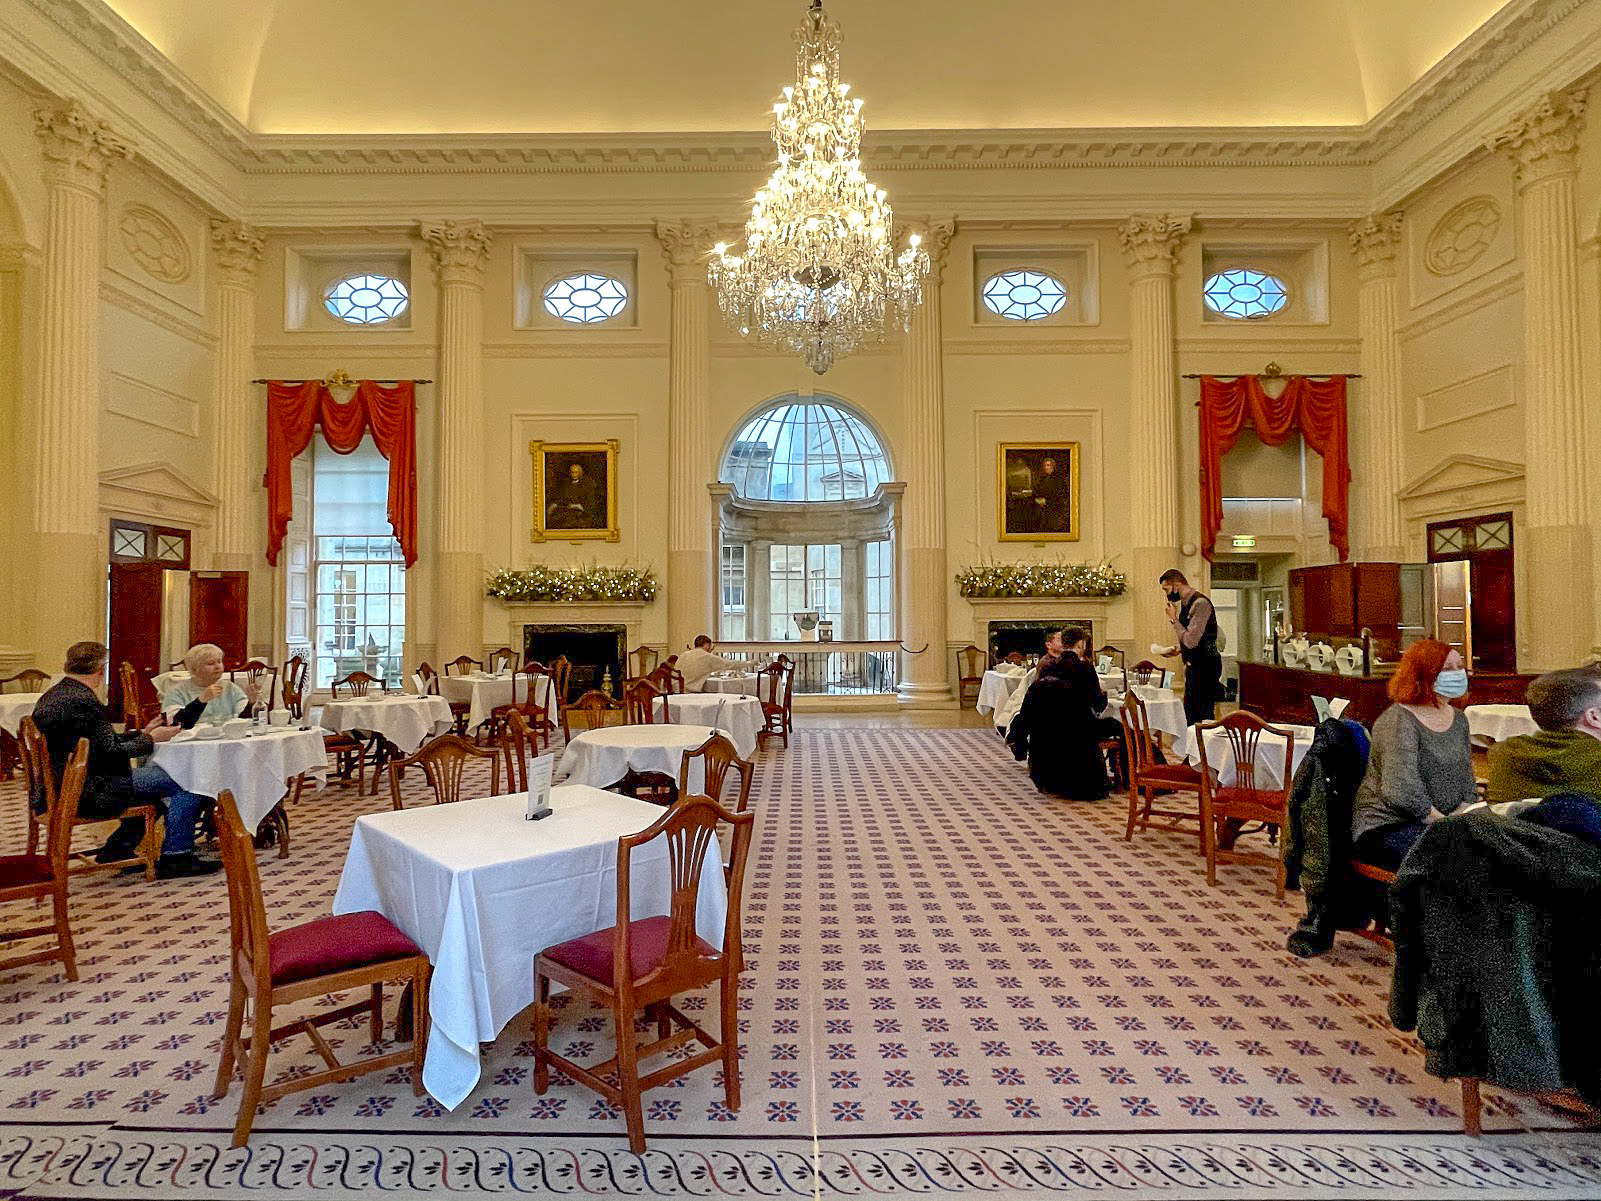 The interior and chandelier of The Pump Room Bath